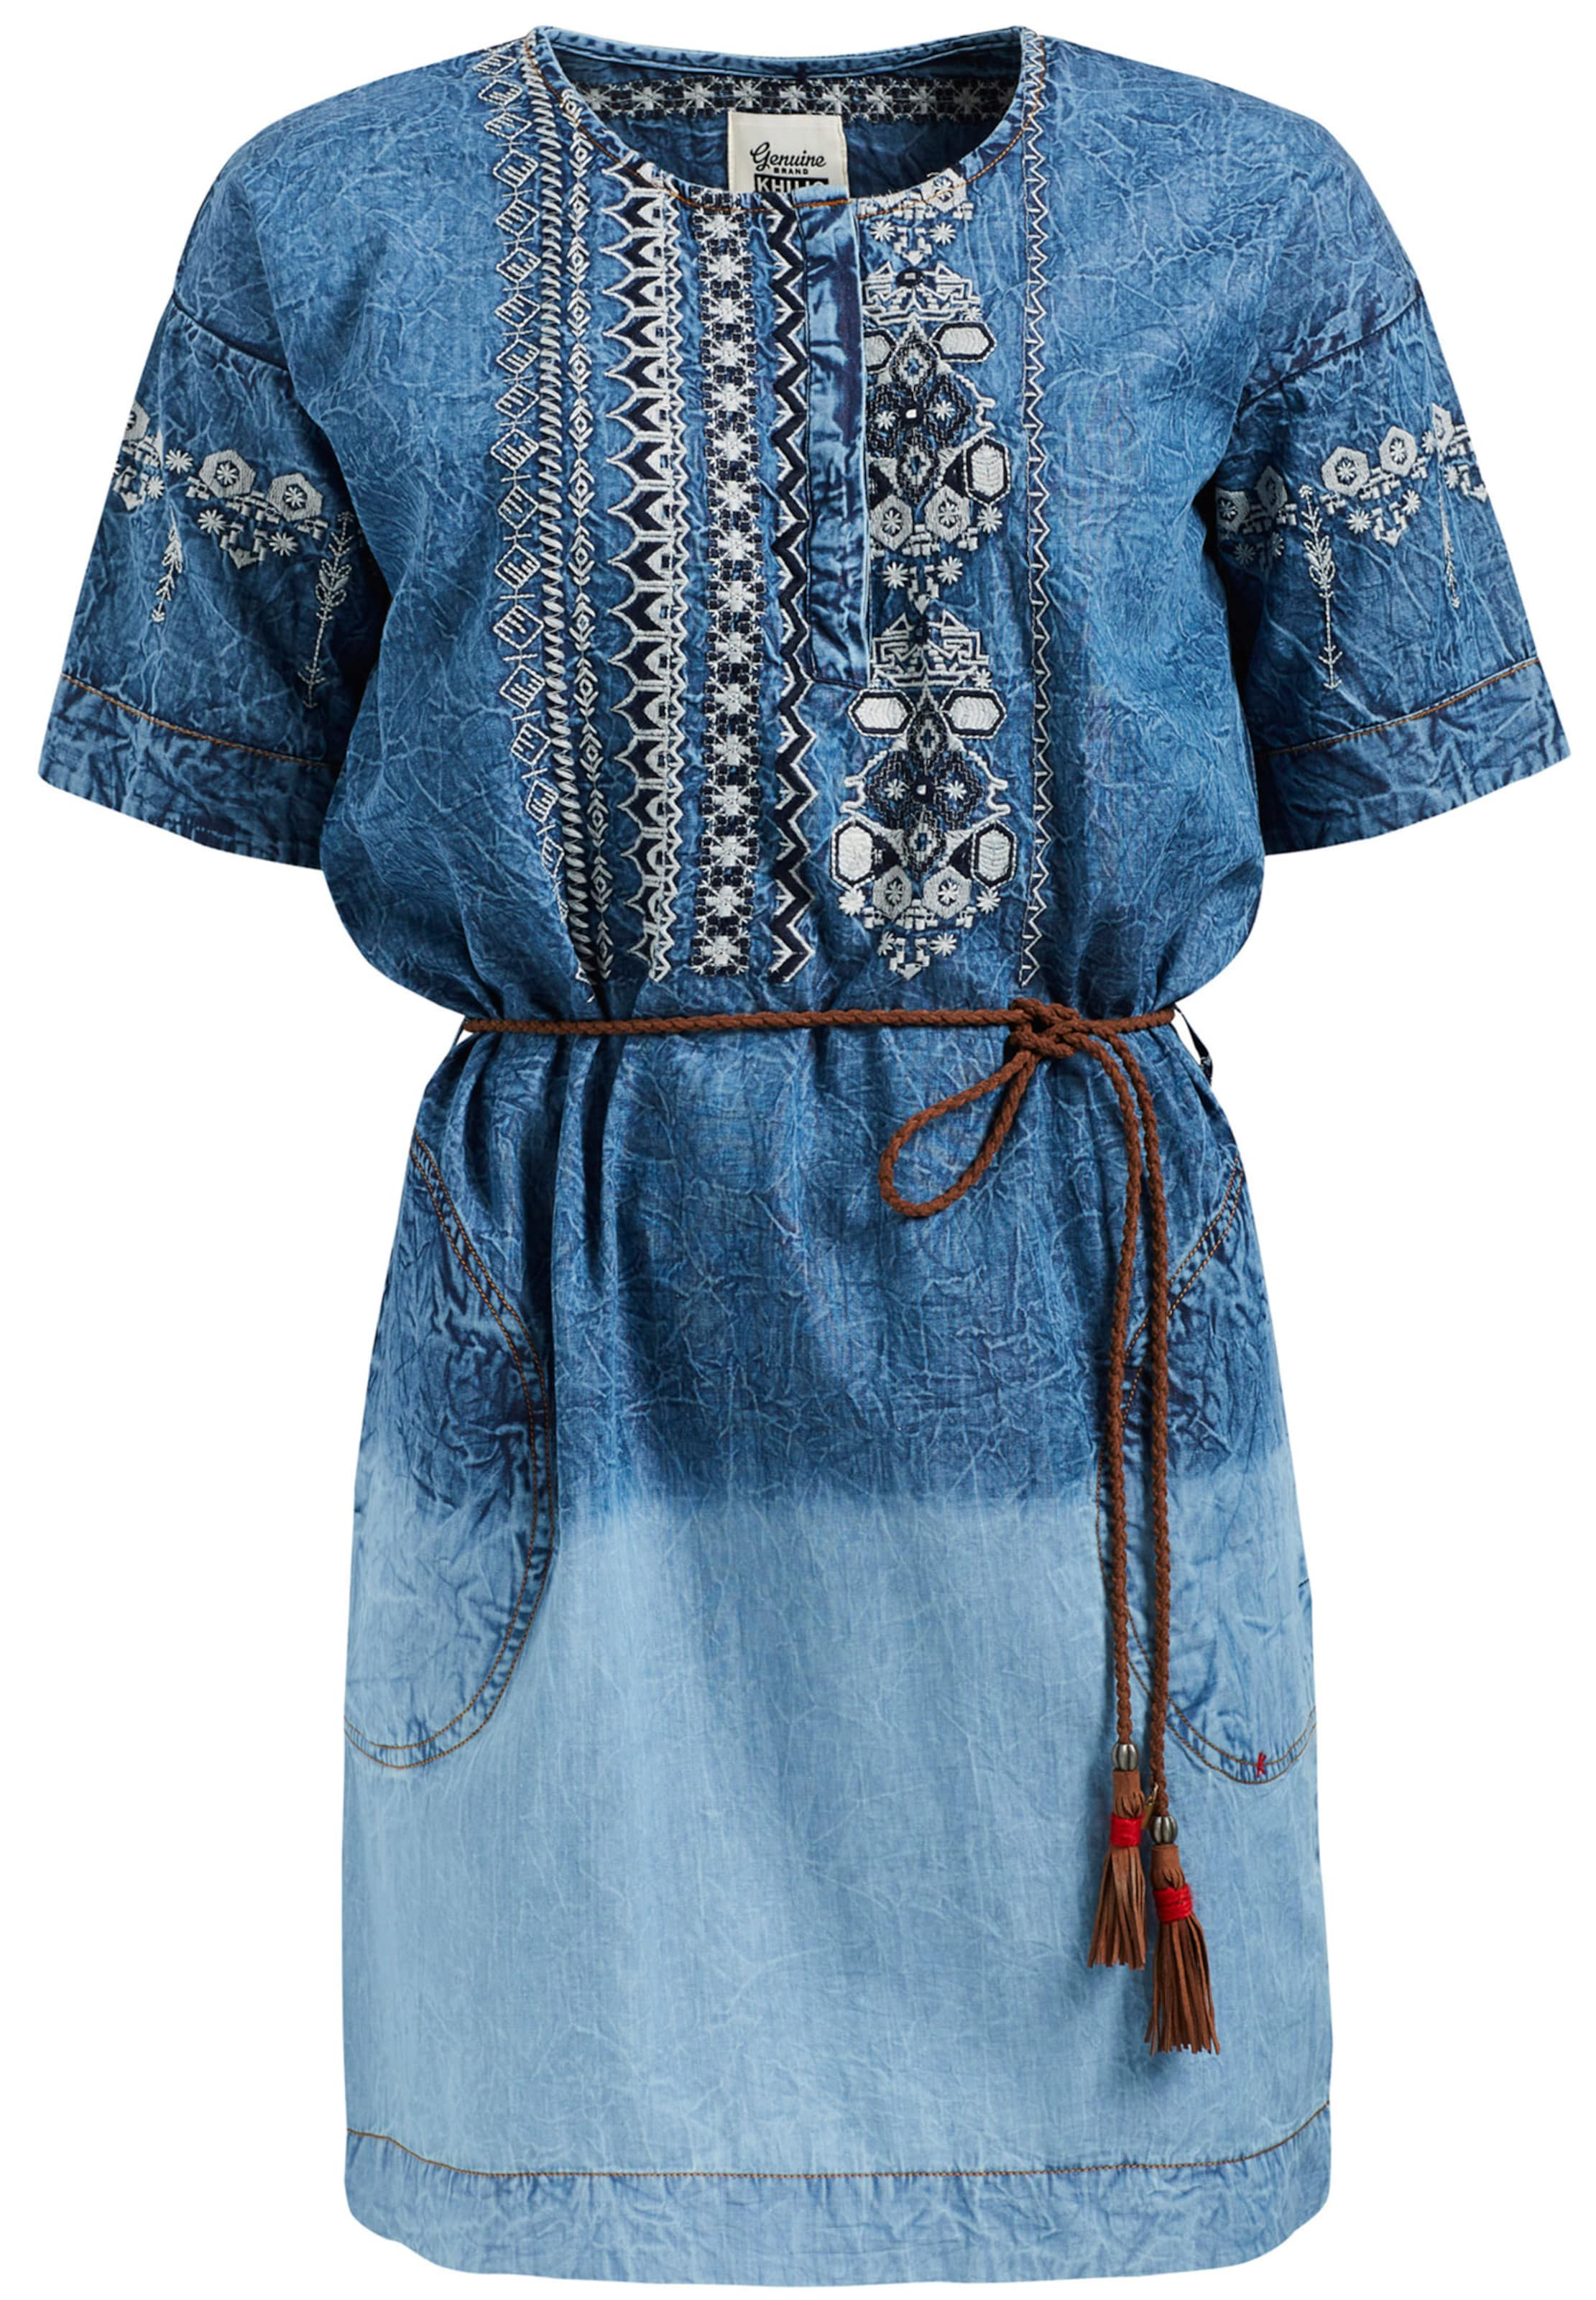 Baila In Kleid Khujo Blue ' Denim 8n0wOkNPX